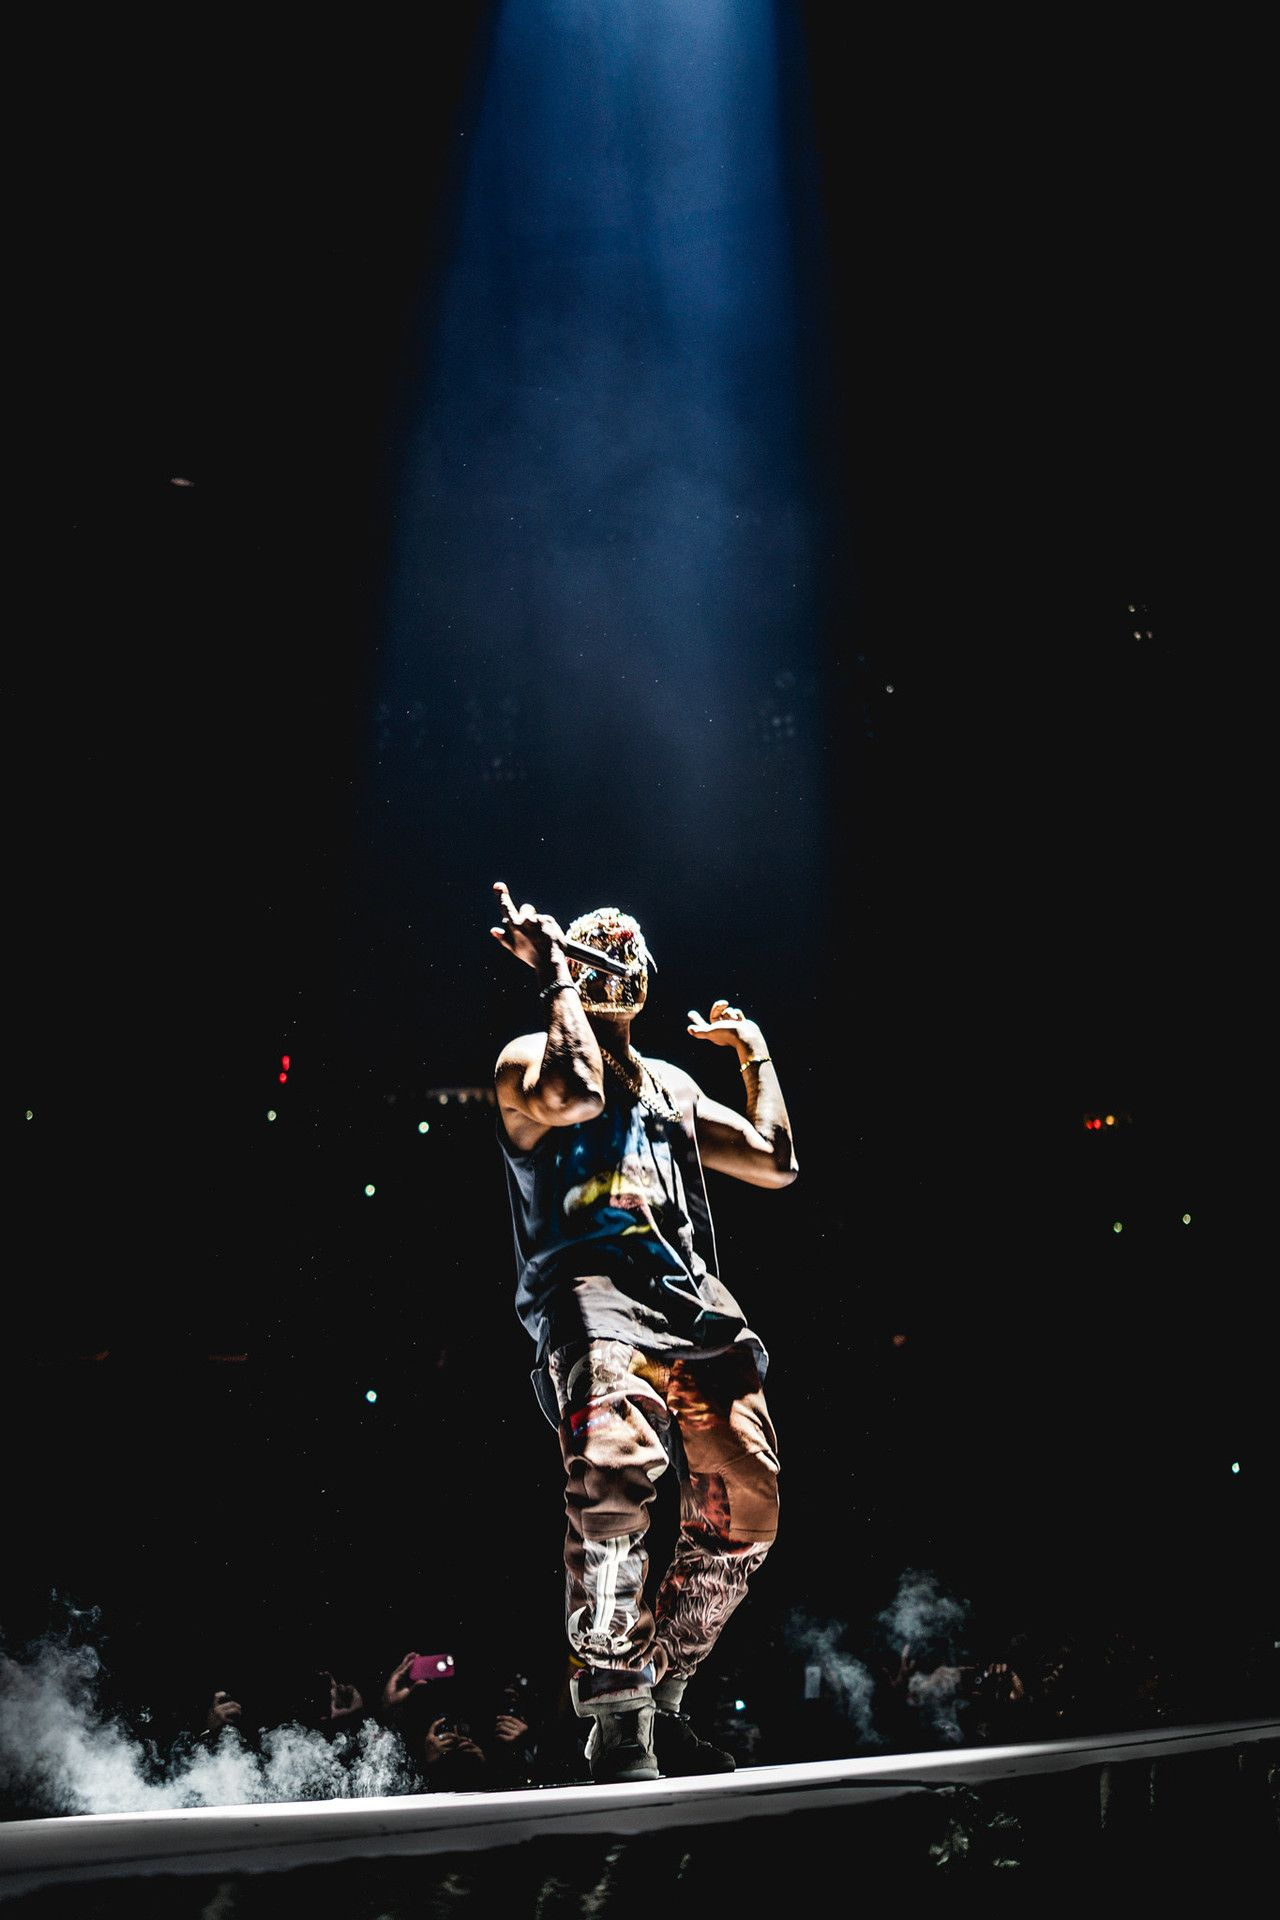 Kanye West Wallpaper Picture Click Wallpapers Wallpaper Click